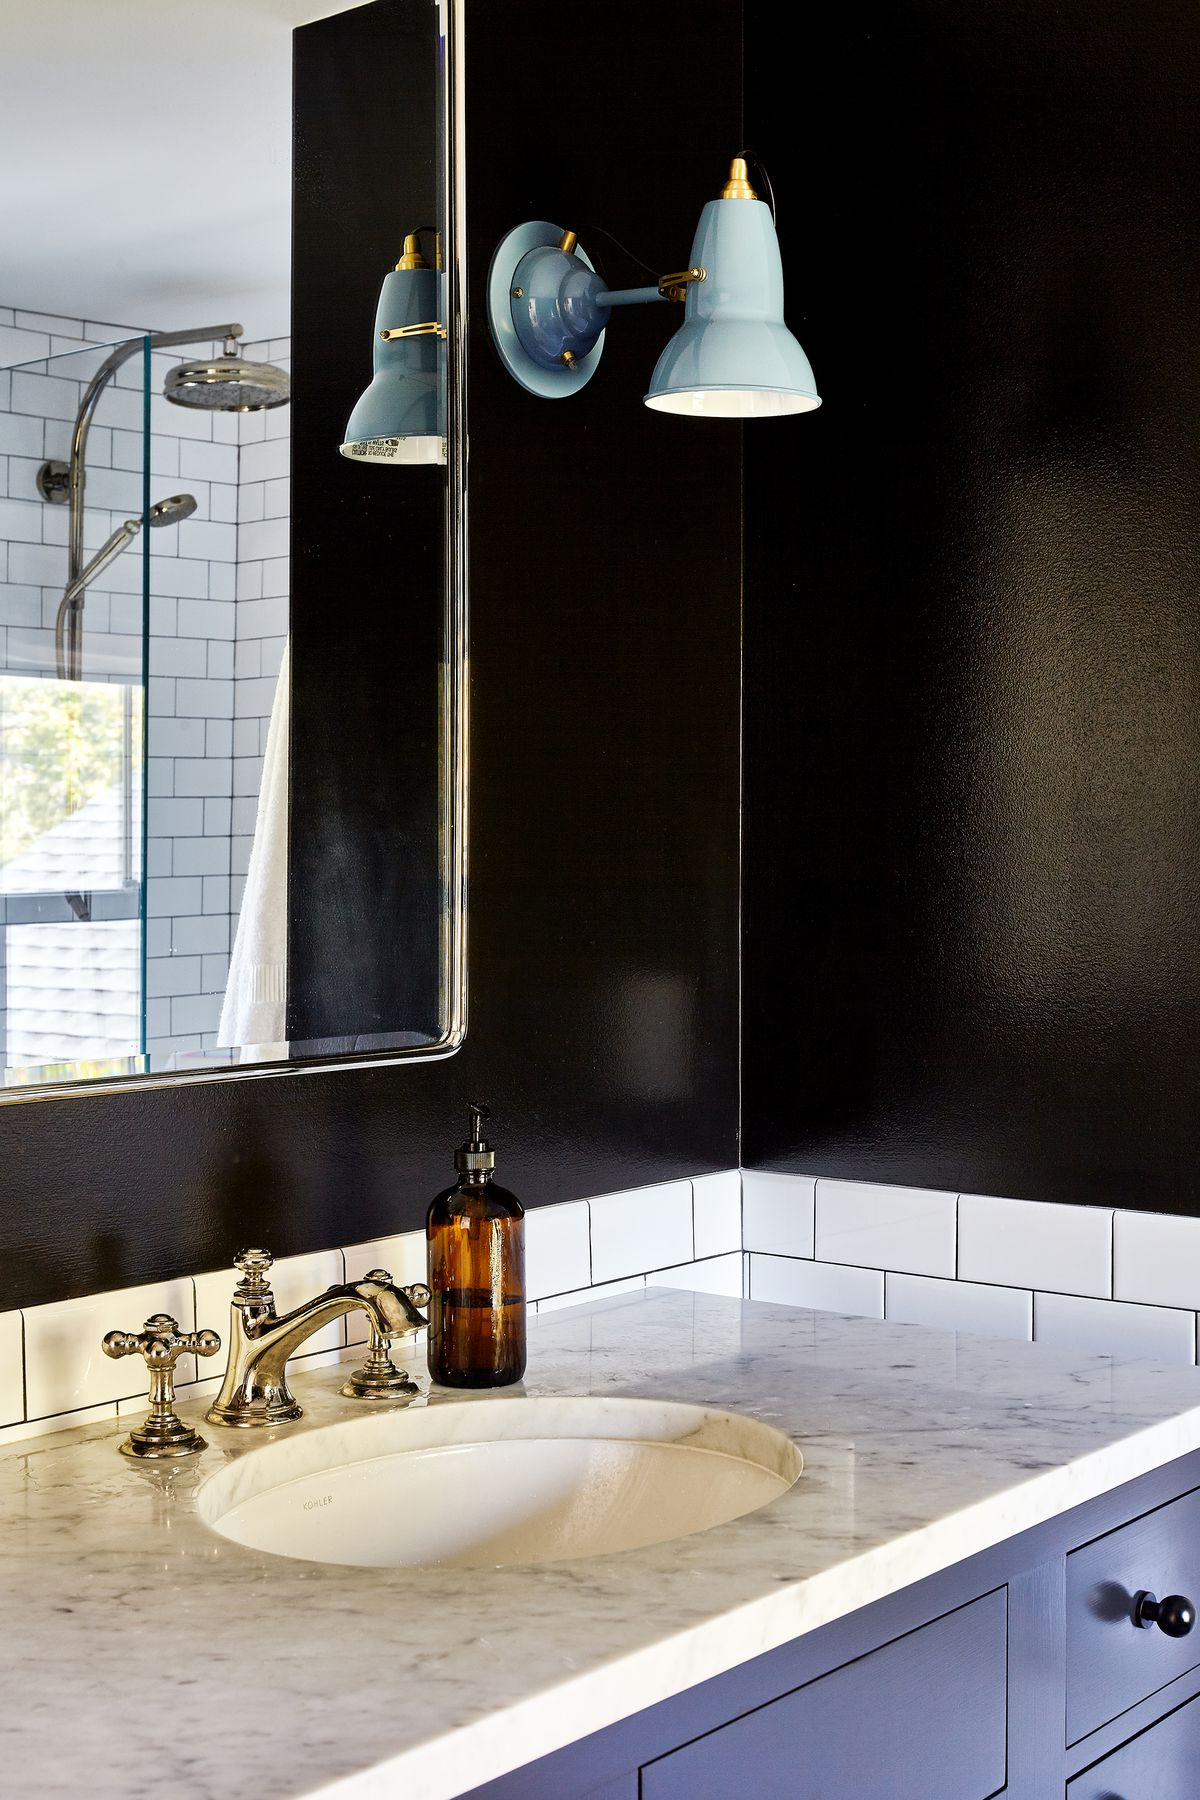 A bathroom has black walls and white tile, with powder blue sconce lights.